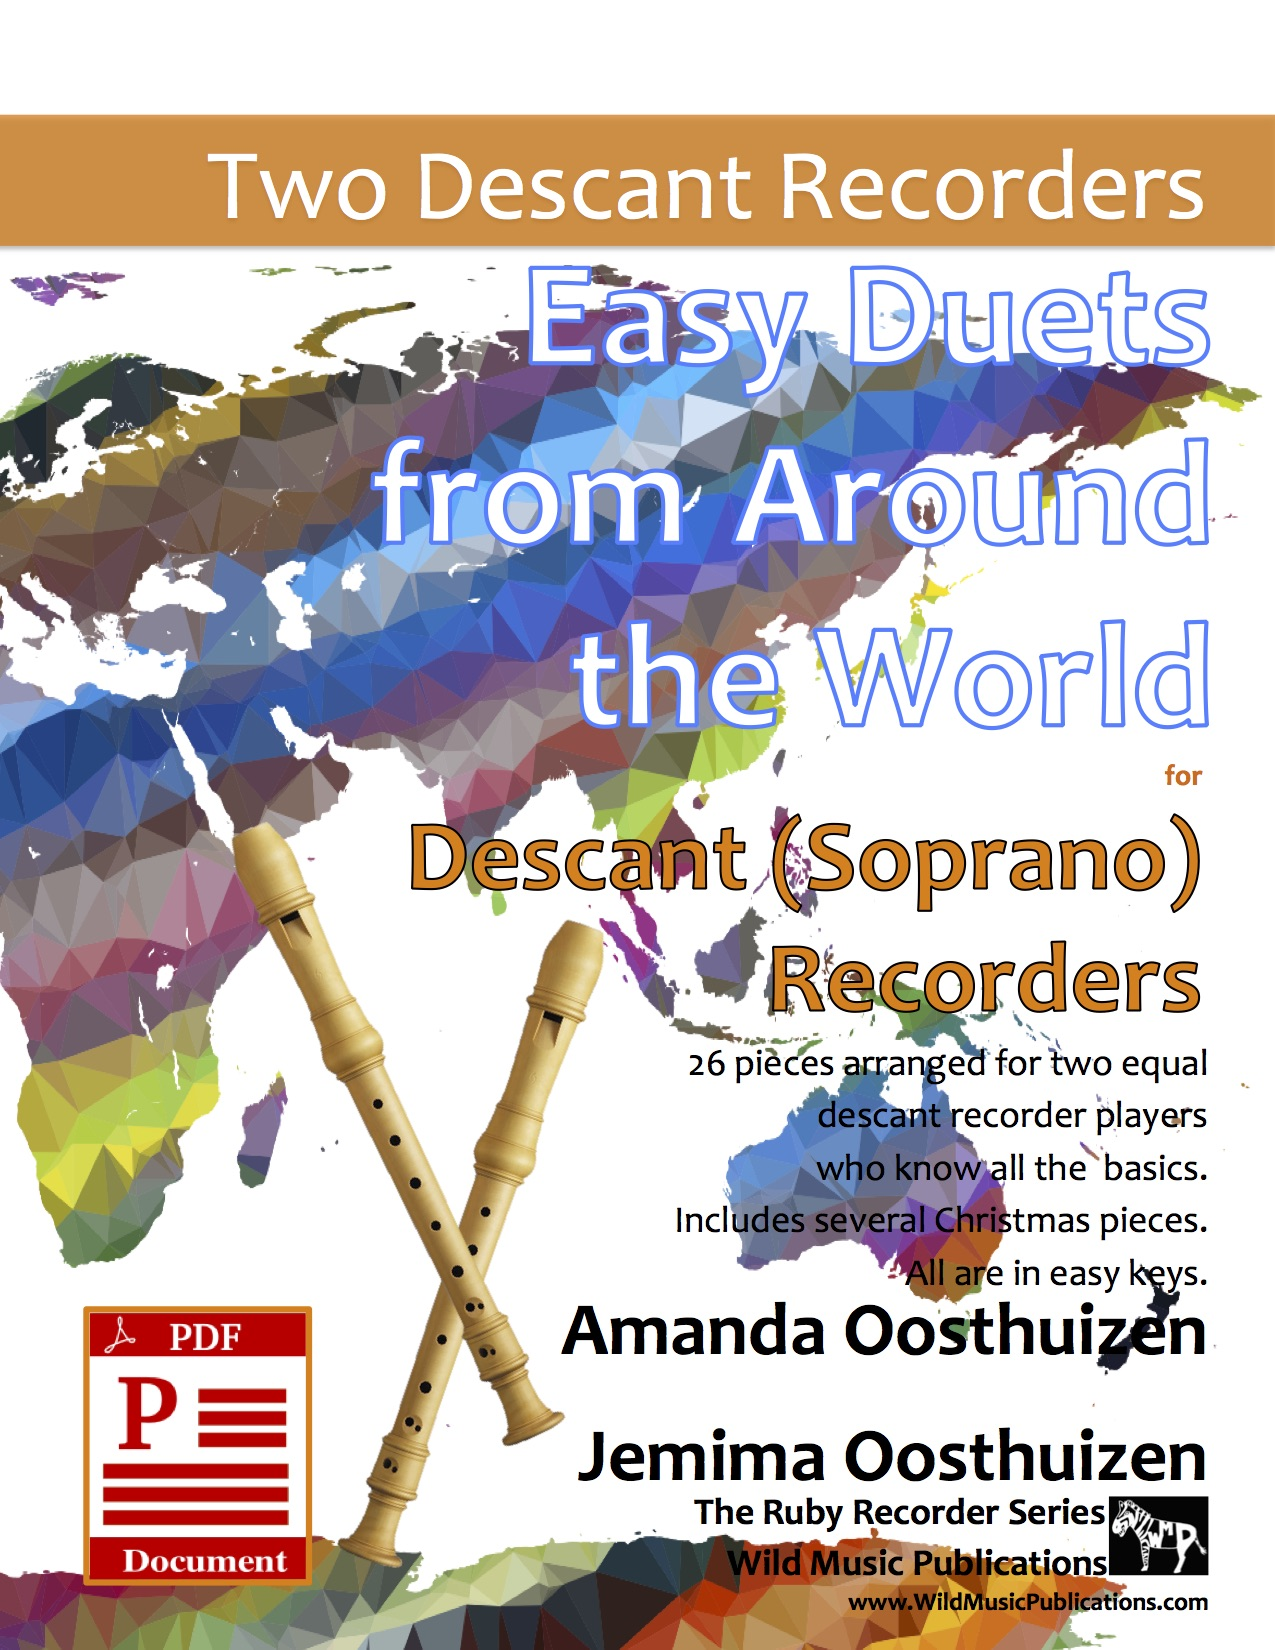 Easy Duets from Around the World for Descant (Soprano) Recorders